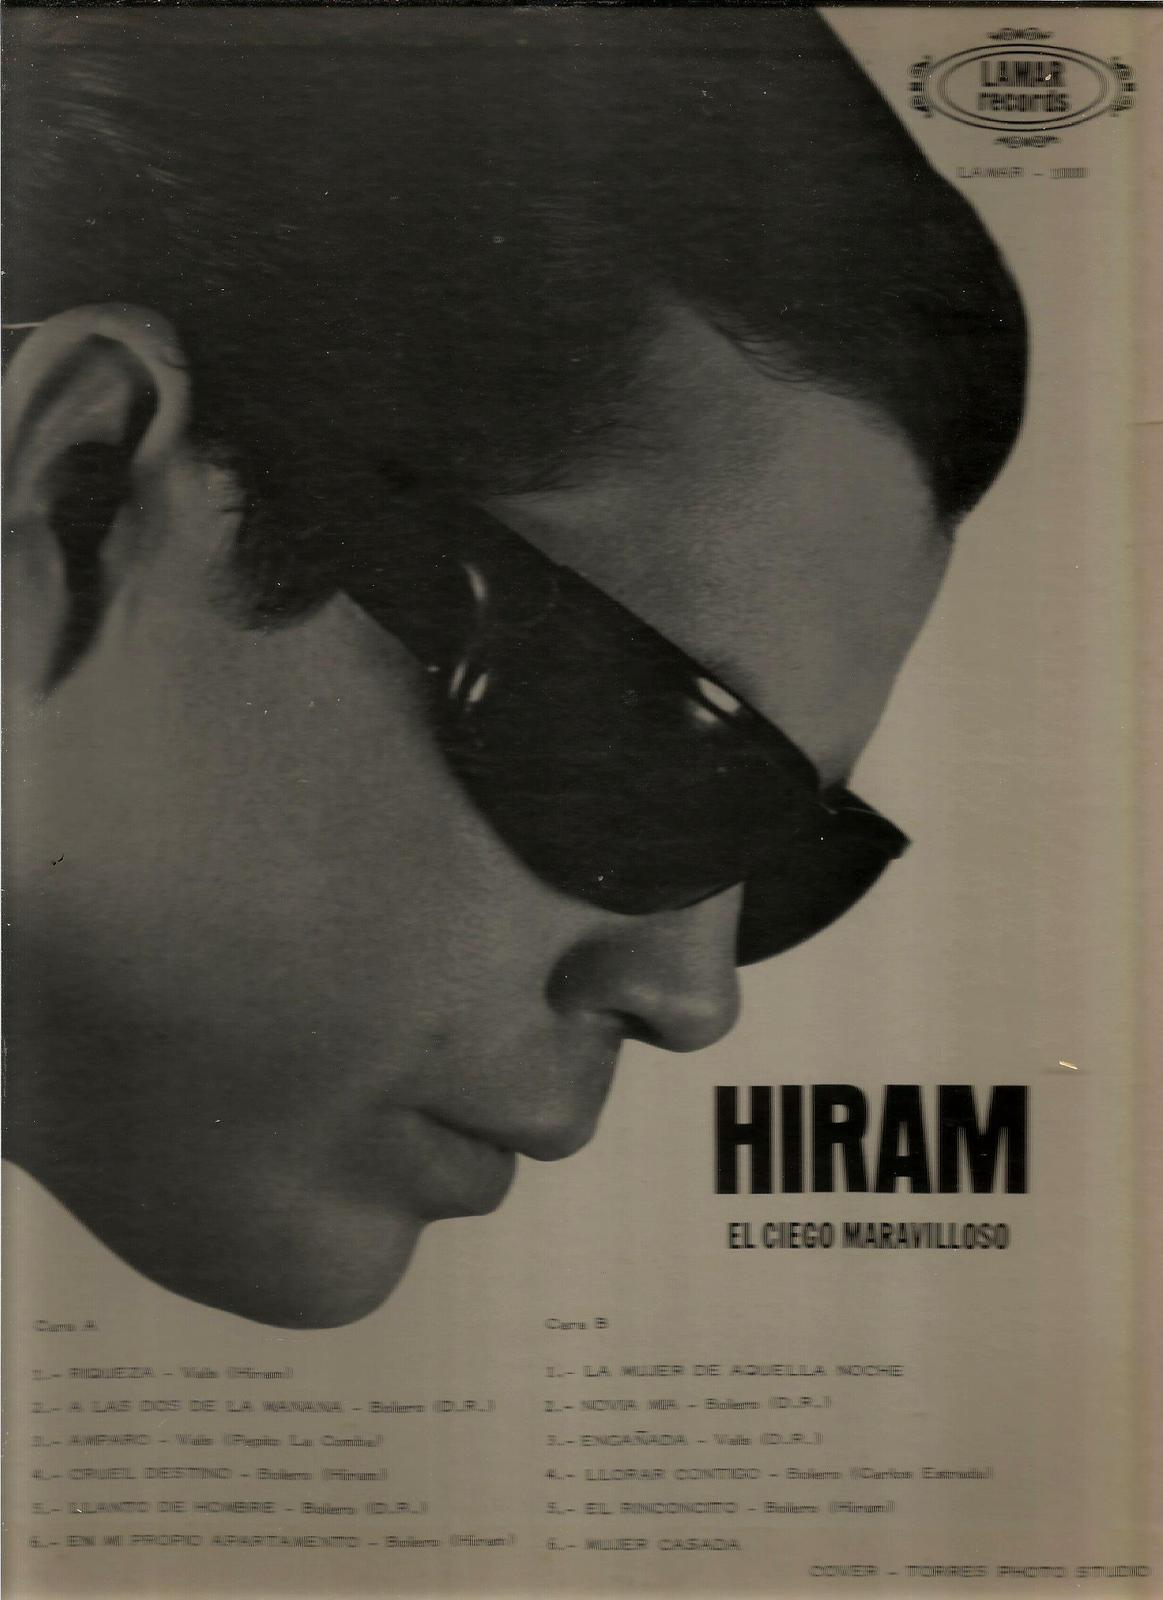 HIRAM  * EL CIEGO MARAVILLOSO ~ THE WONDERFUL BLIND MAN *  LP  STEREO